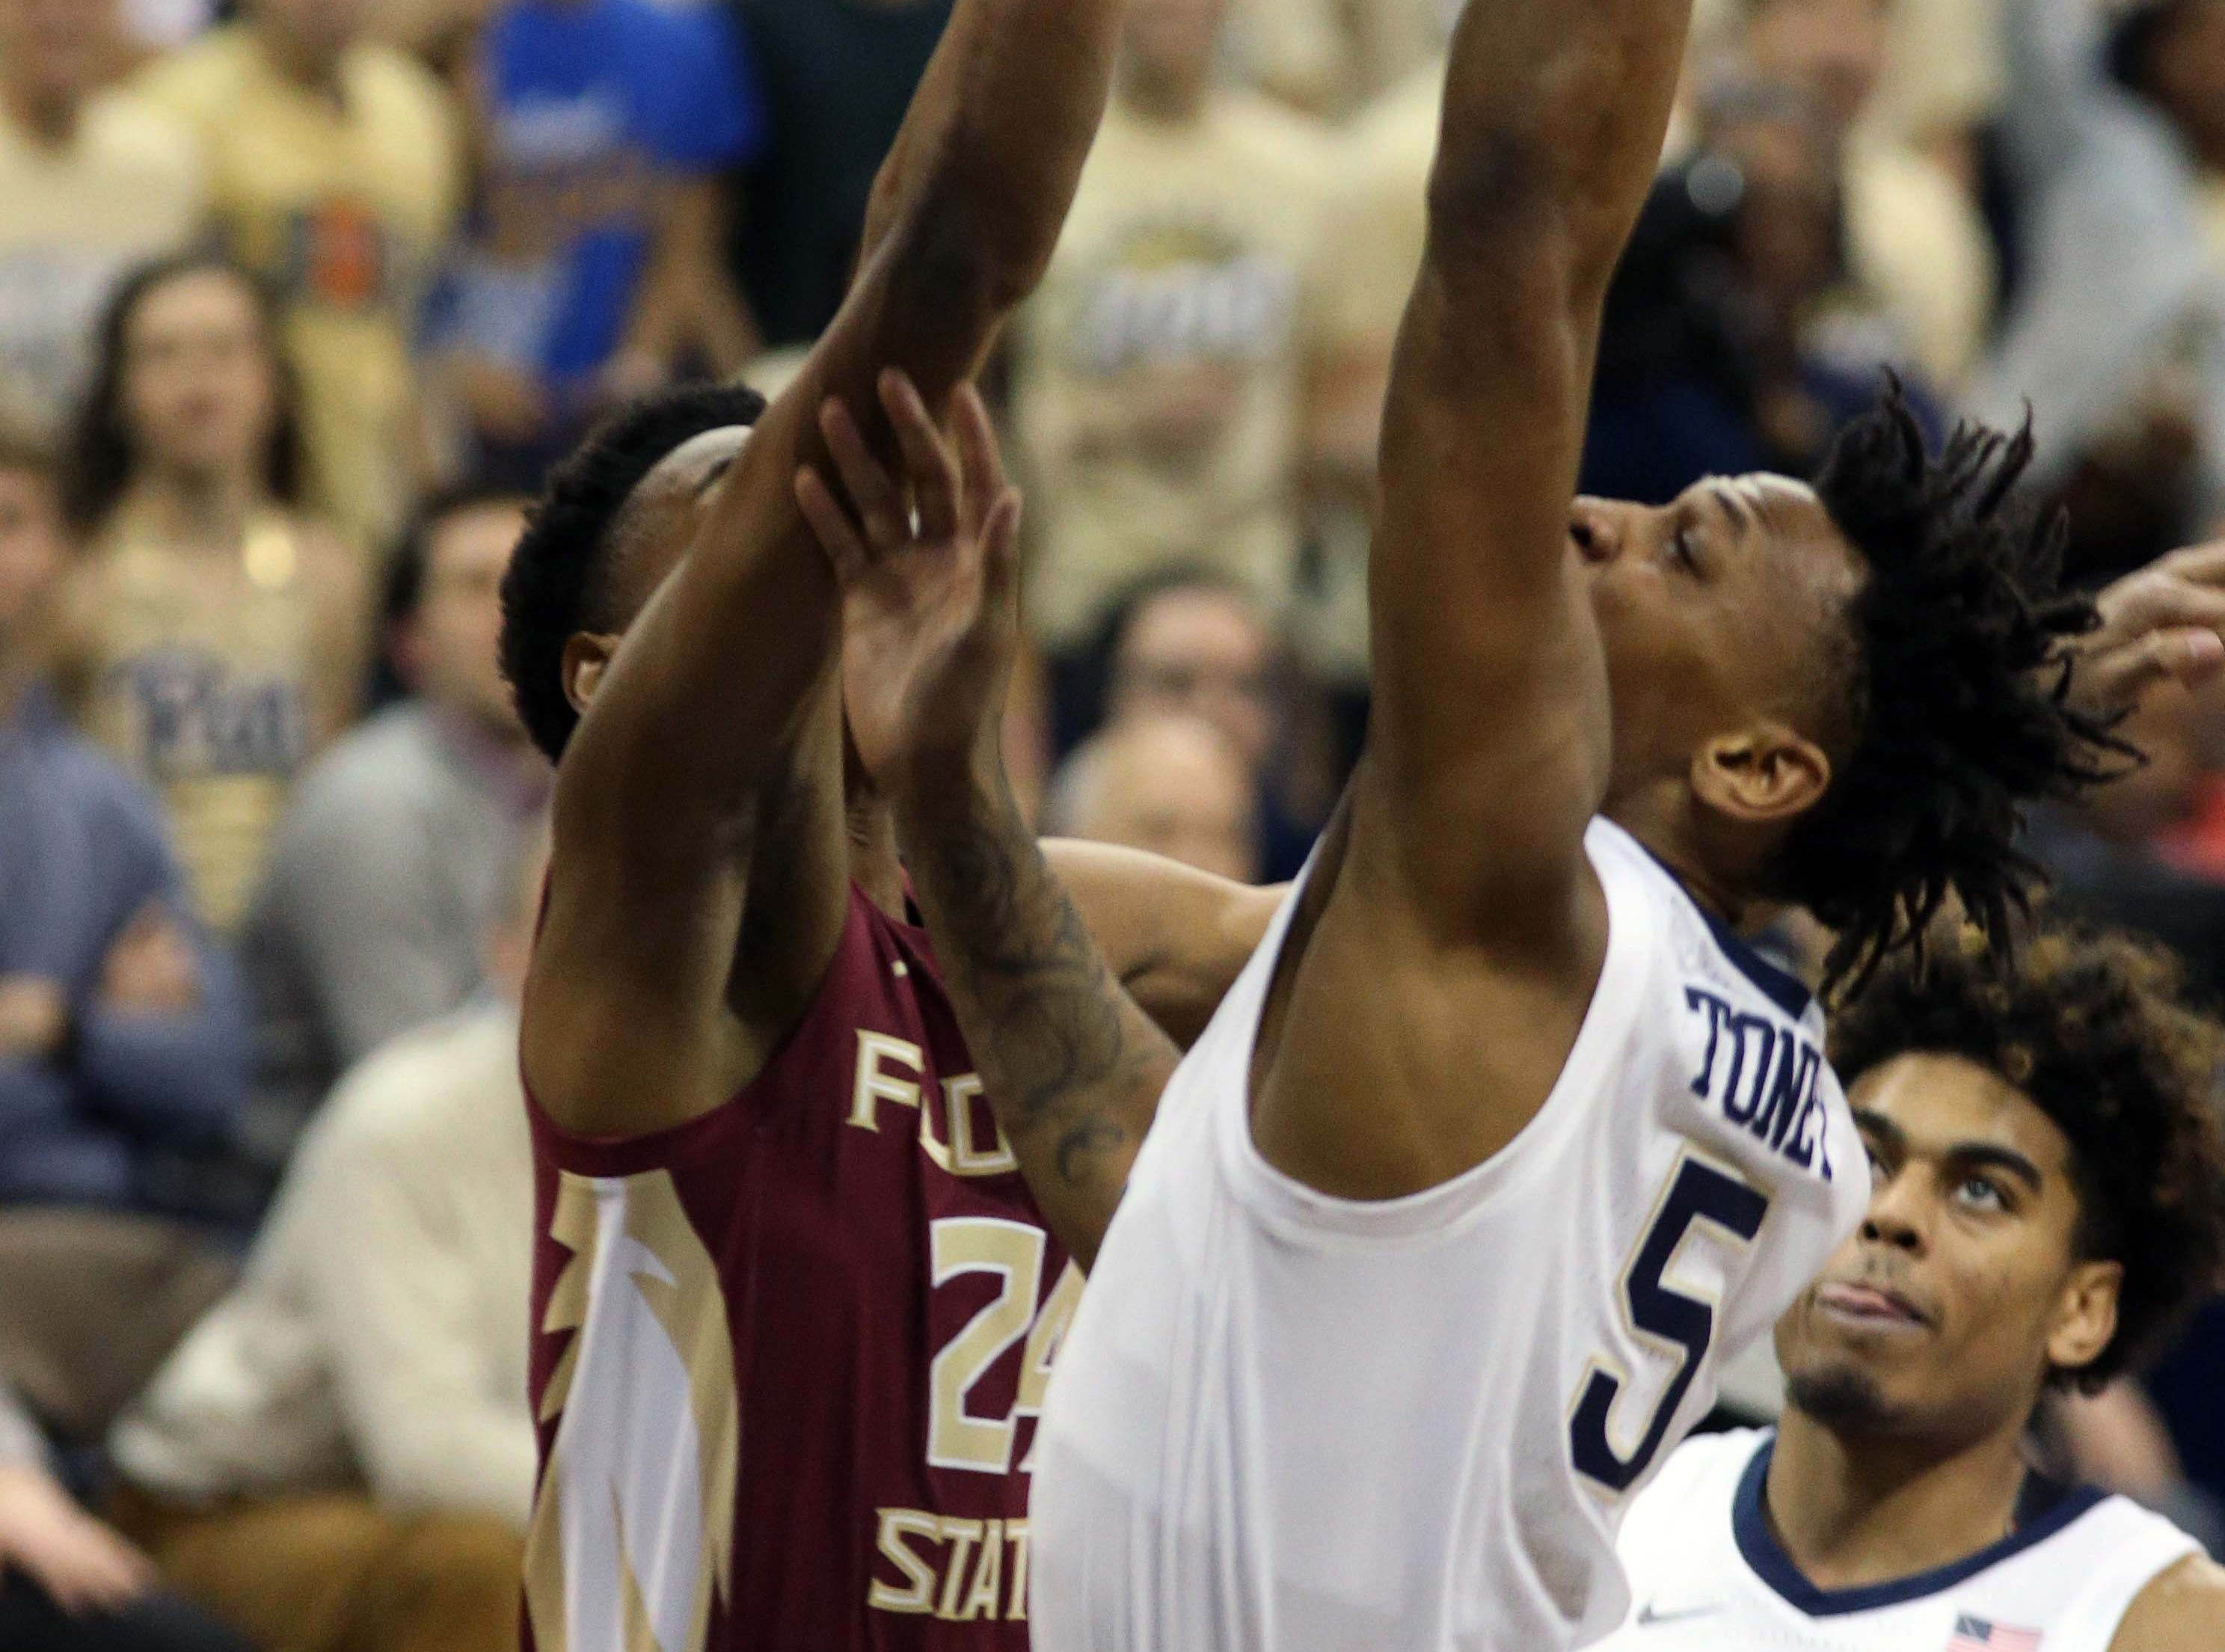 Jan 14, 2019; Pittsburgh, PA, USA; Pittsburgh Panthers guard Au'Diese Toney (5) shoots against Florida State Seminoles guard Devin Vassell (24) during the first half at the Petersen Events Center. Mandatory Credit: Charles LeClaire-USA TODAY Sports